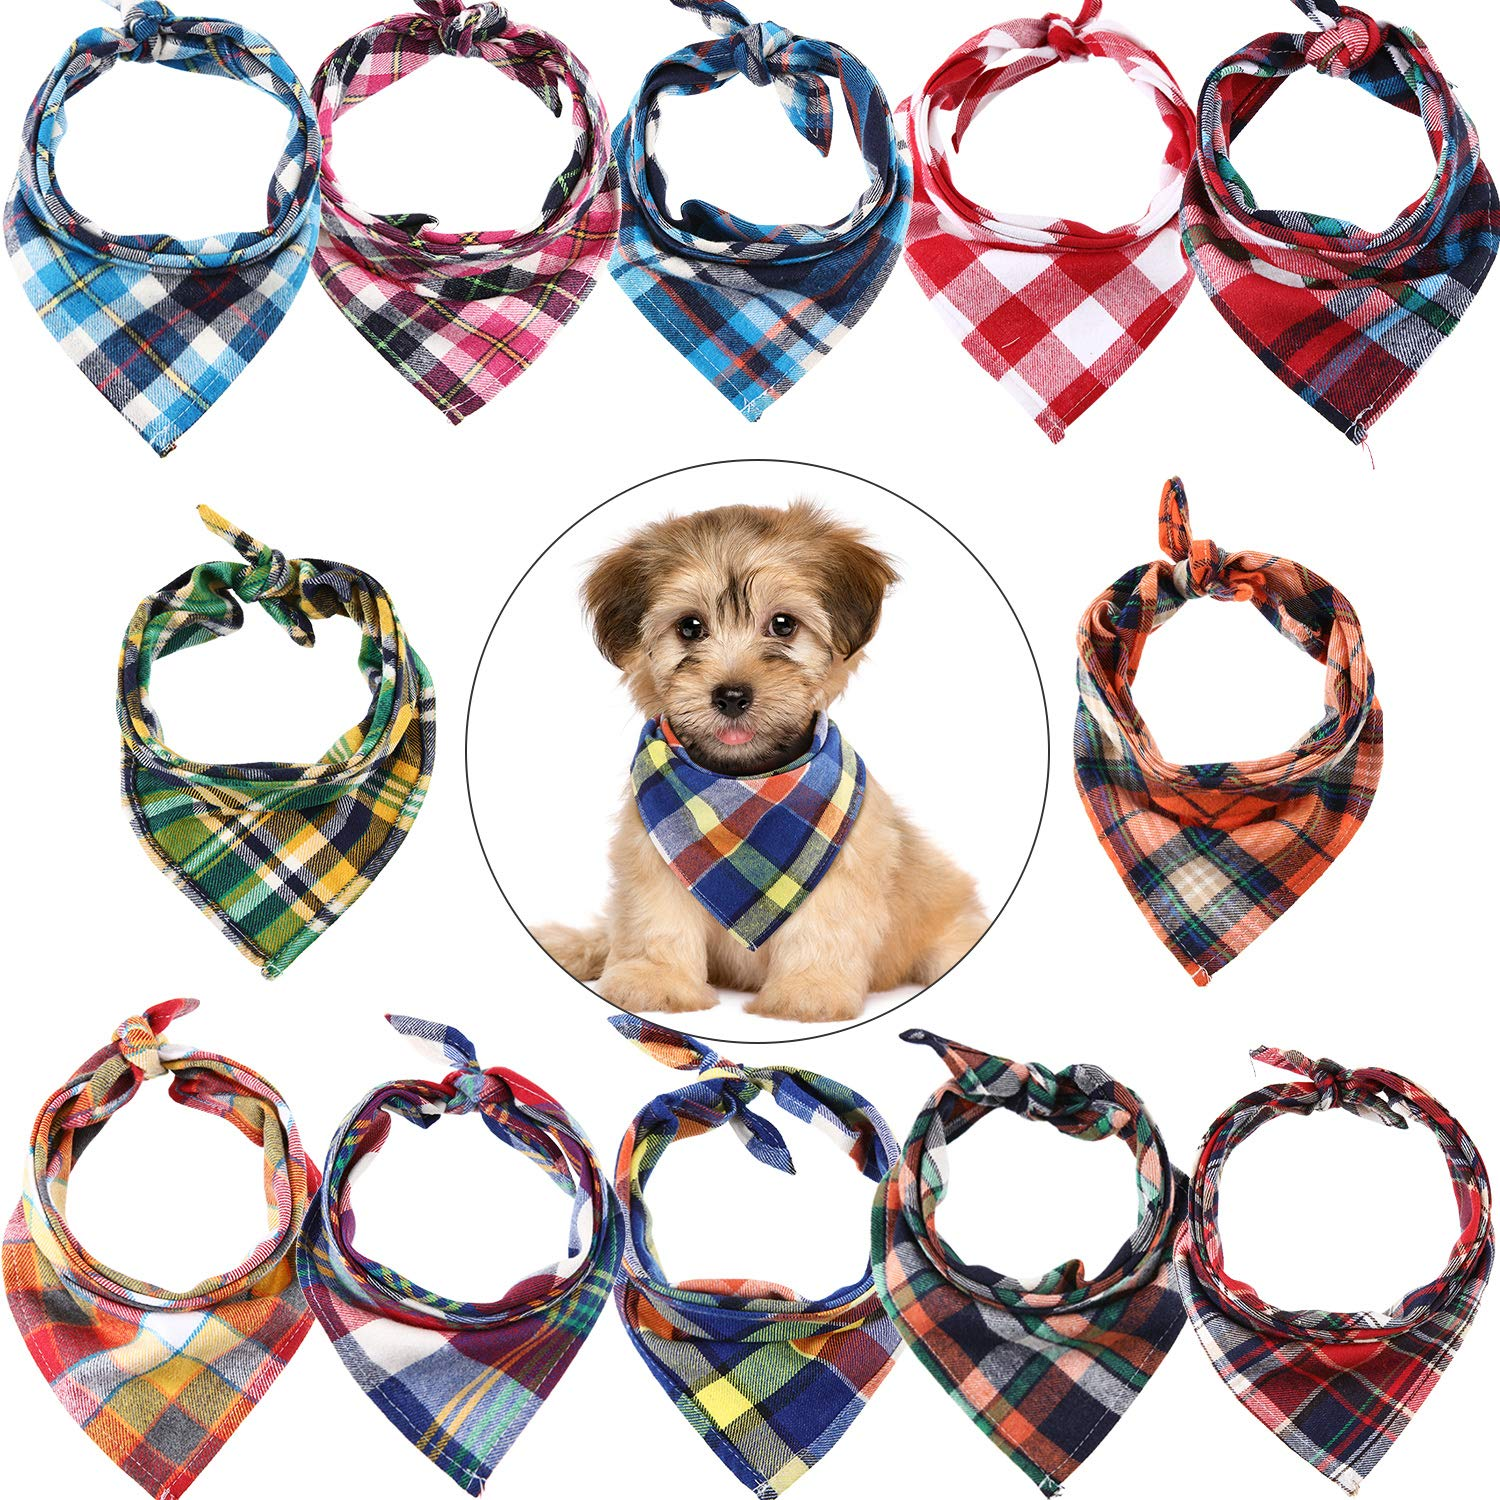 12 Pieces Dog Bandanas - Triangle Dog Scarf, Washable Reversible Printing, Bibs Dog Kerchief Set, Suitable for Small or Medium-Sized Cat and Dog Pets 81vFlBSIQmL